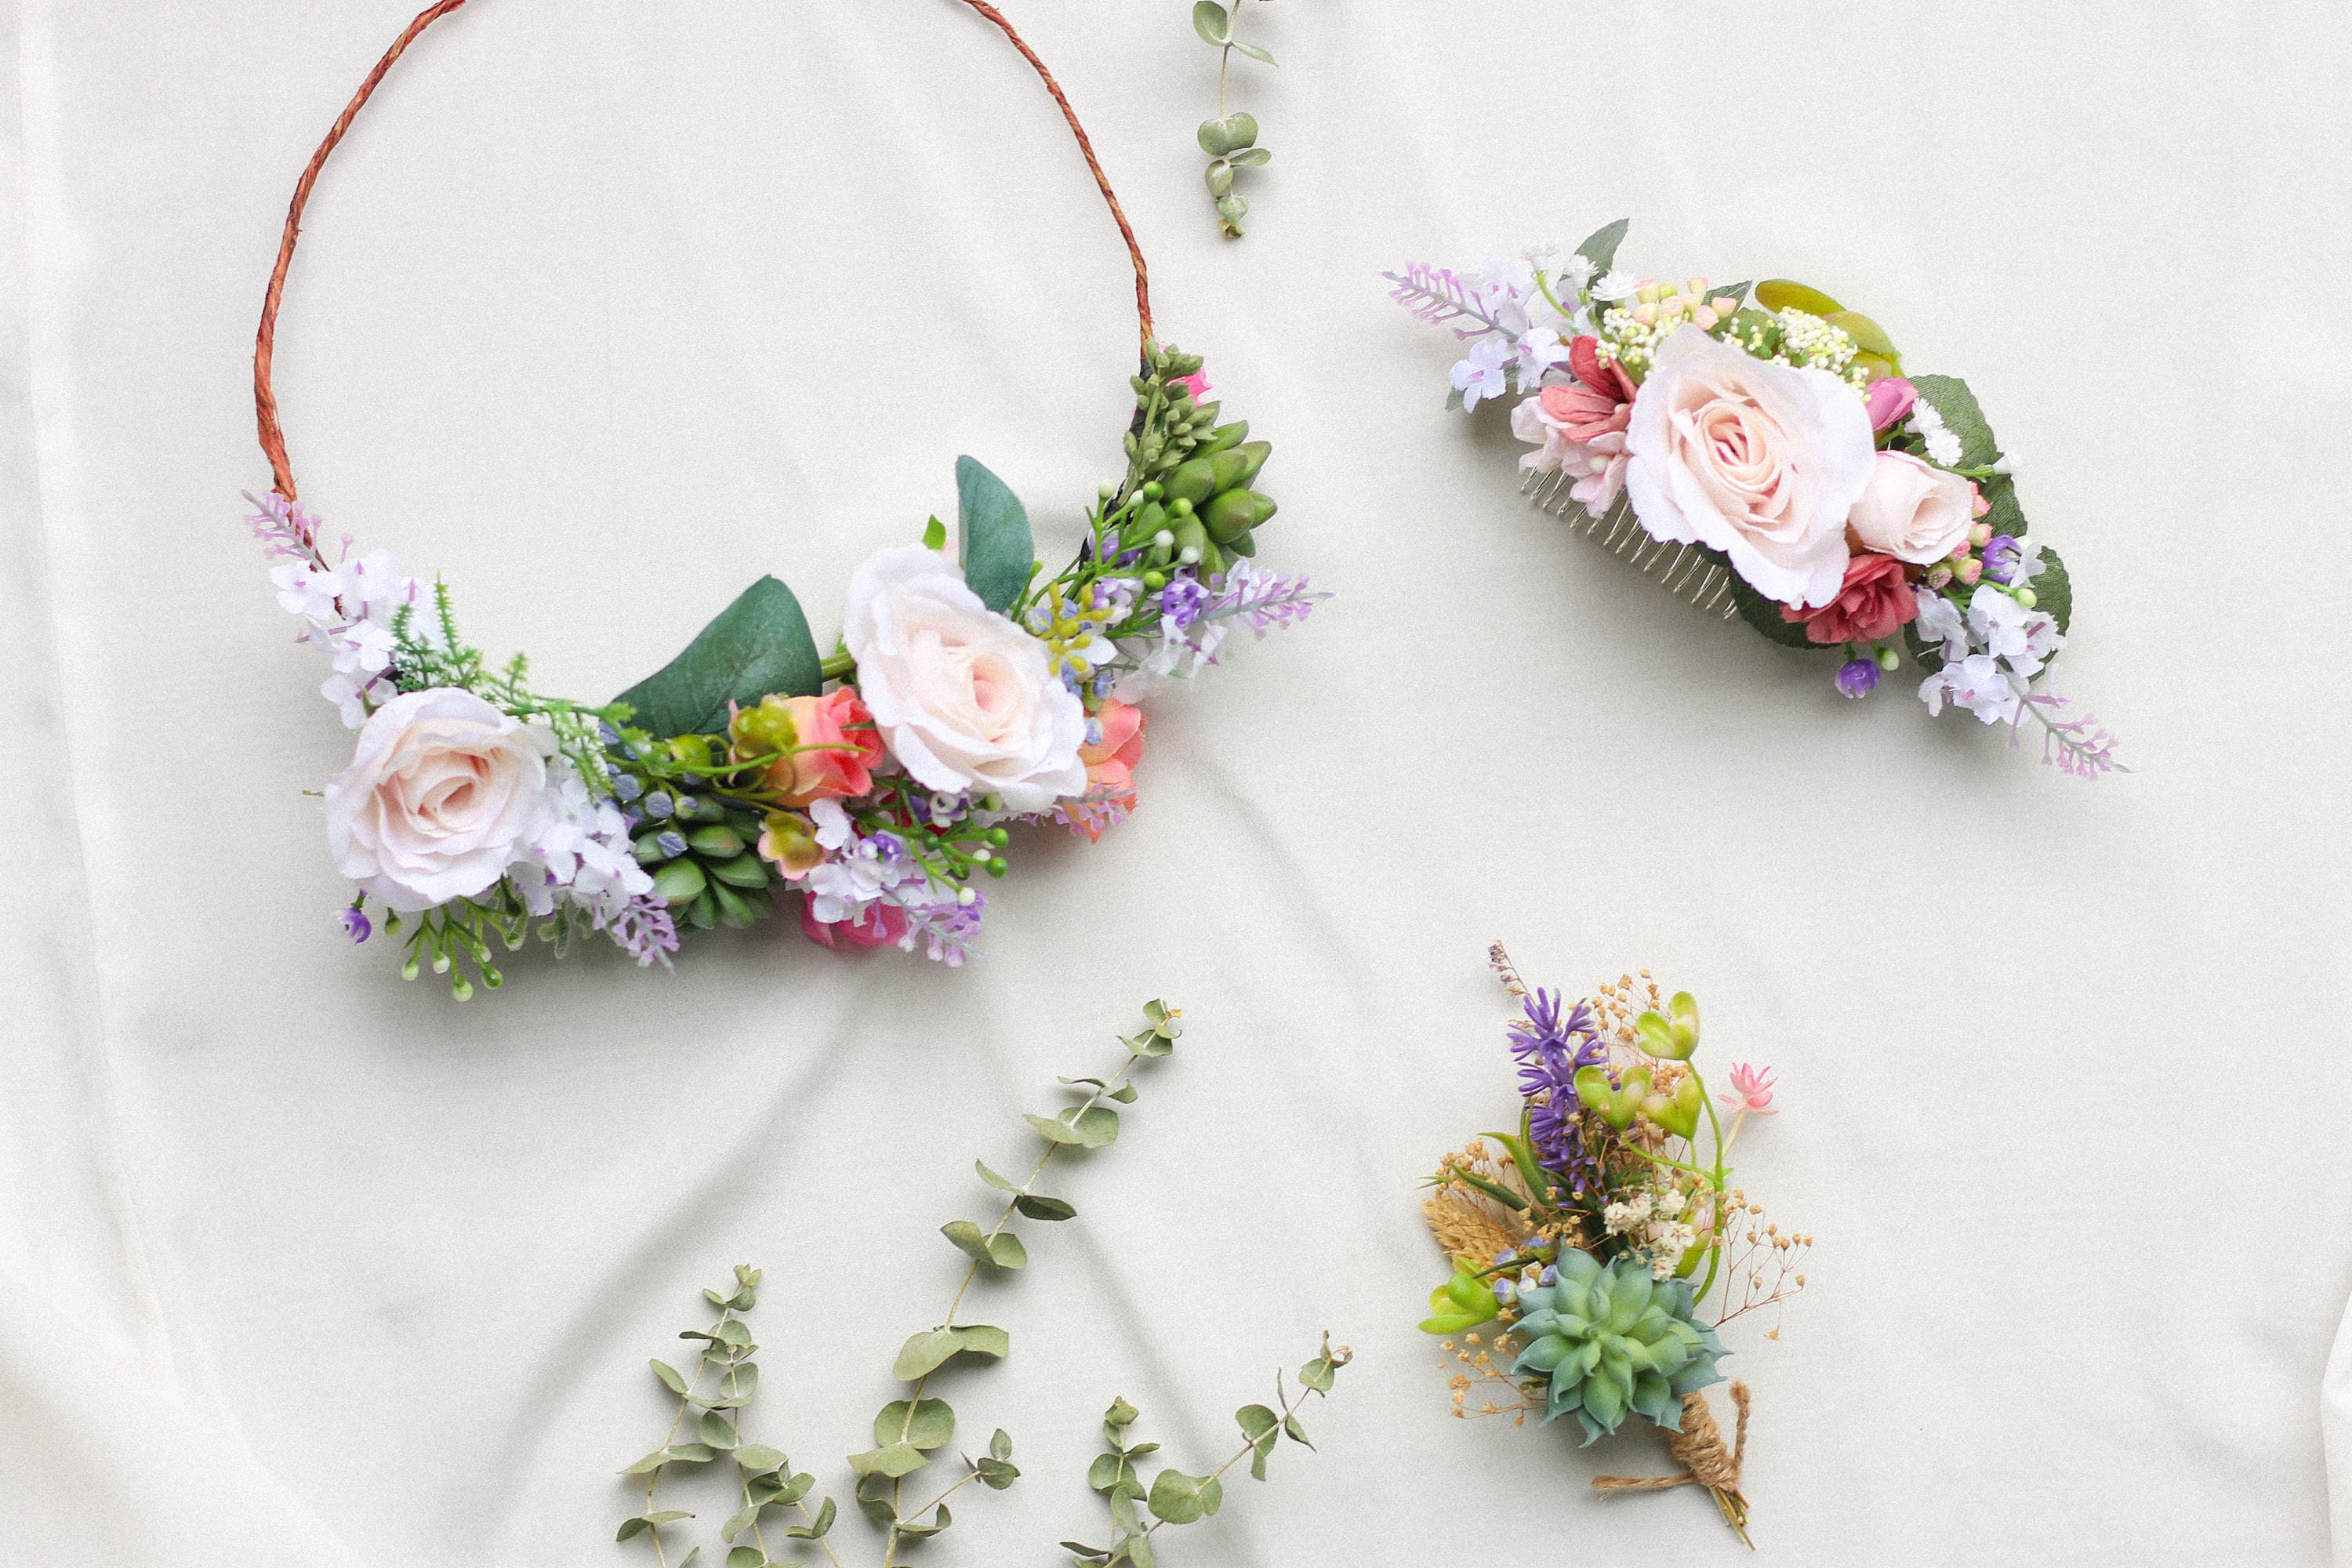 Succulent flower crown green and blush headpiece floral crown succulent flower crown green and blush headpiece floral crown wedding bohemian retro crown flower hair accessory izmirmasajfo